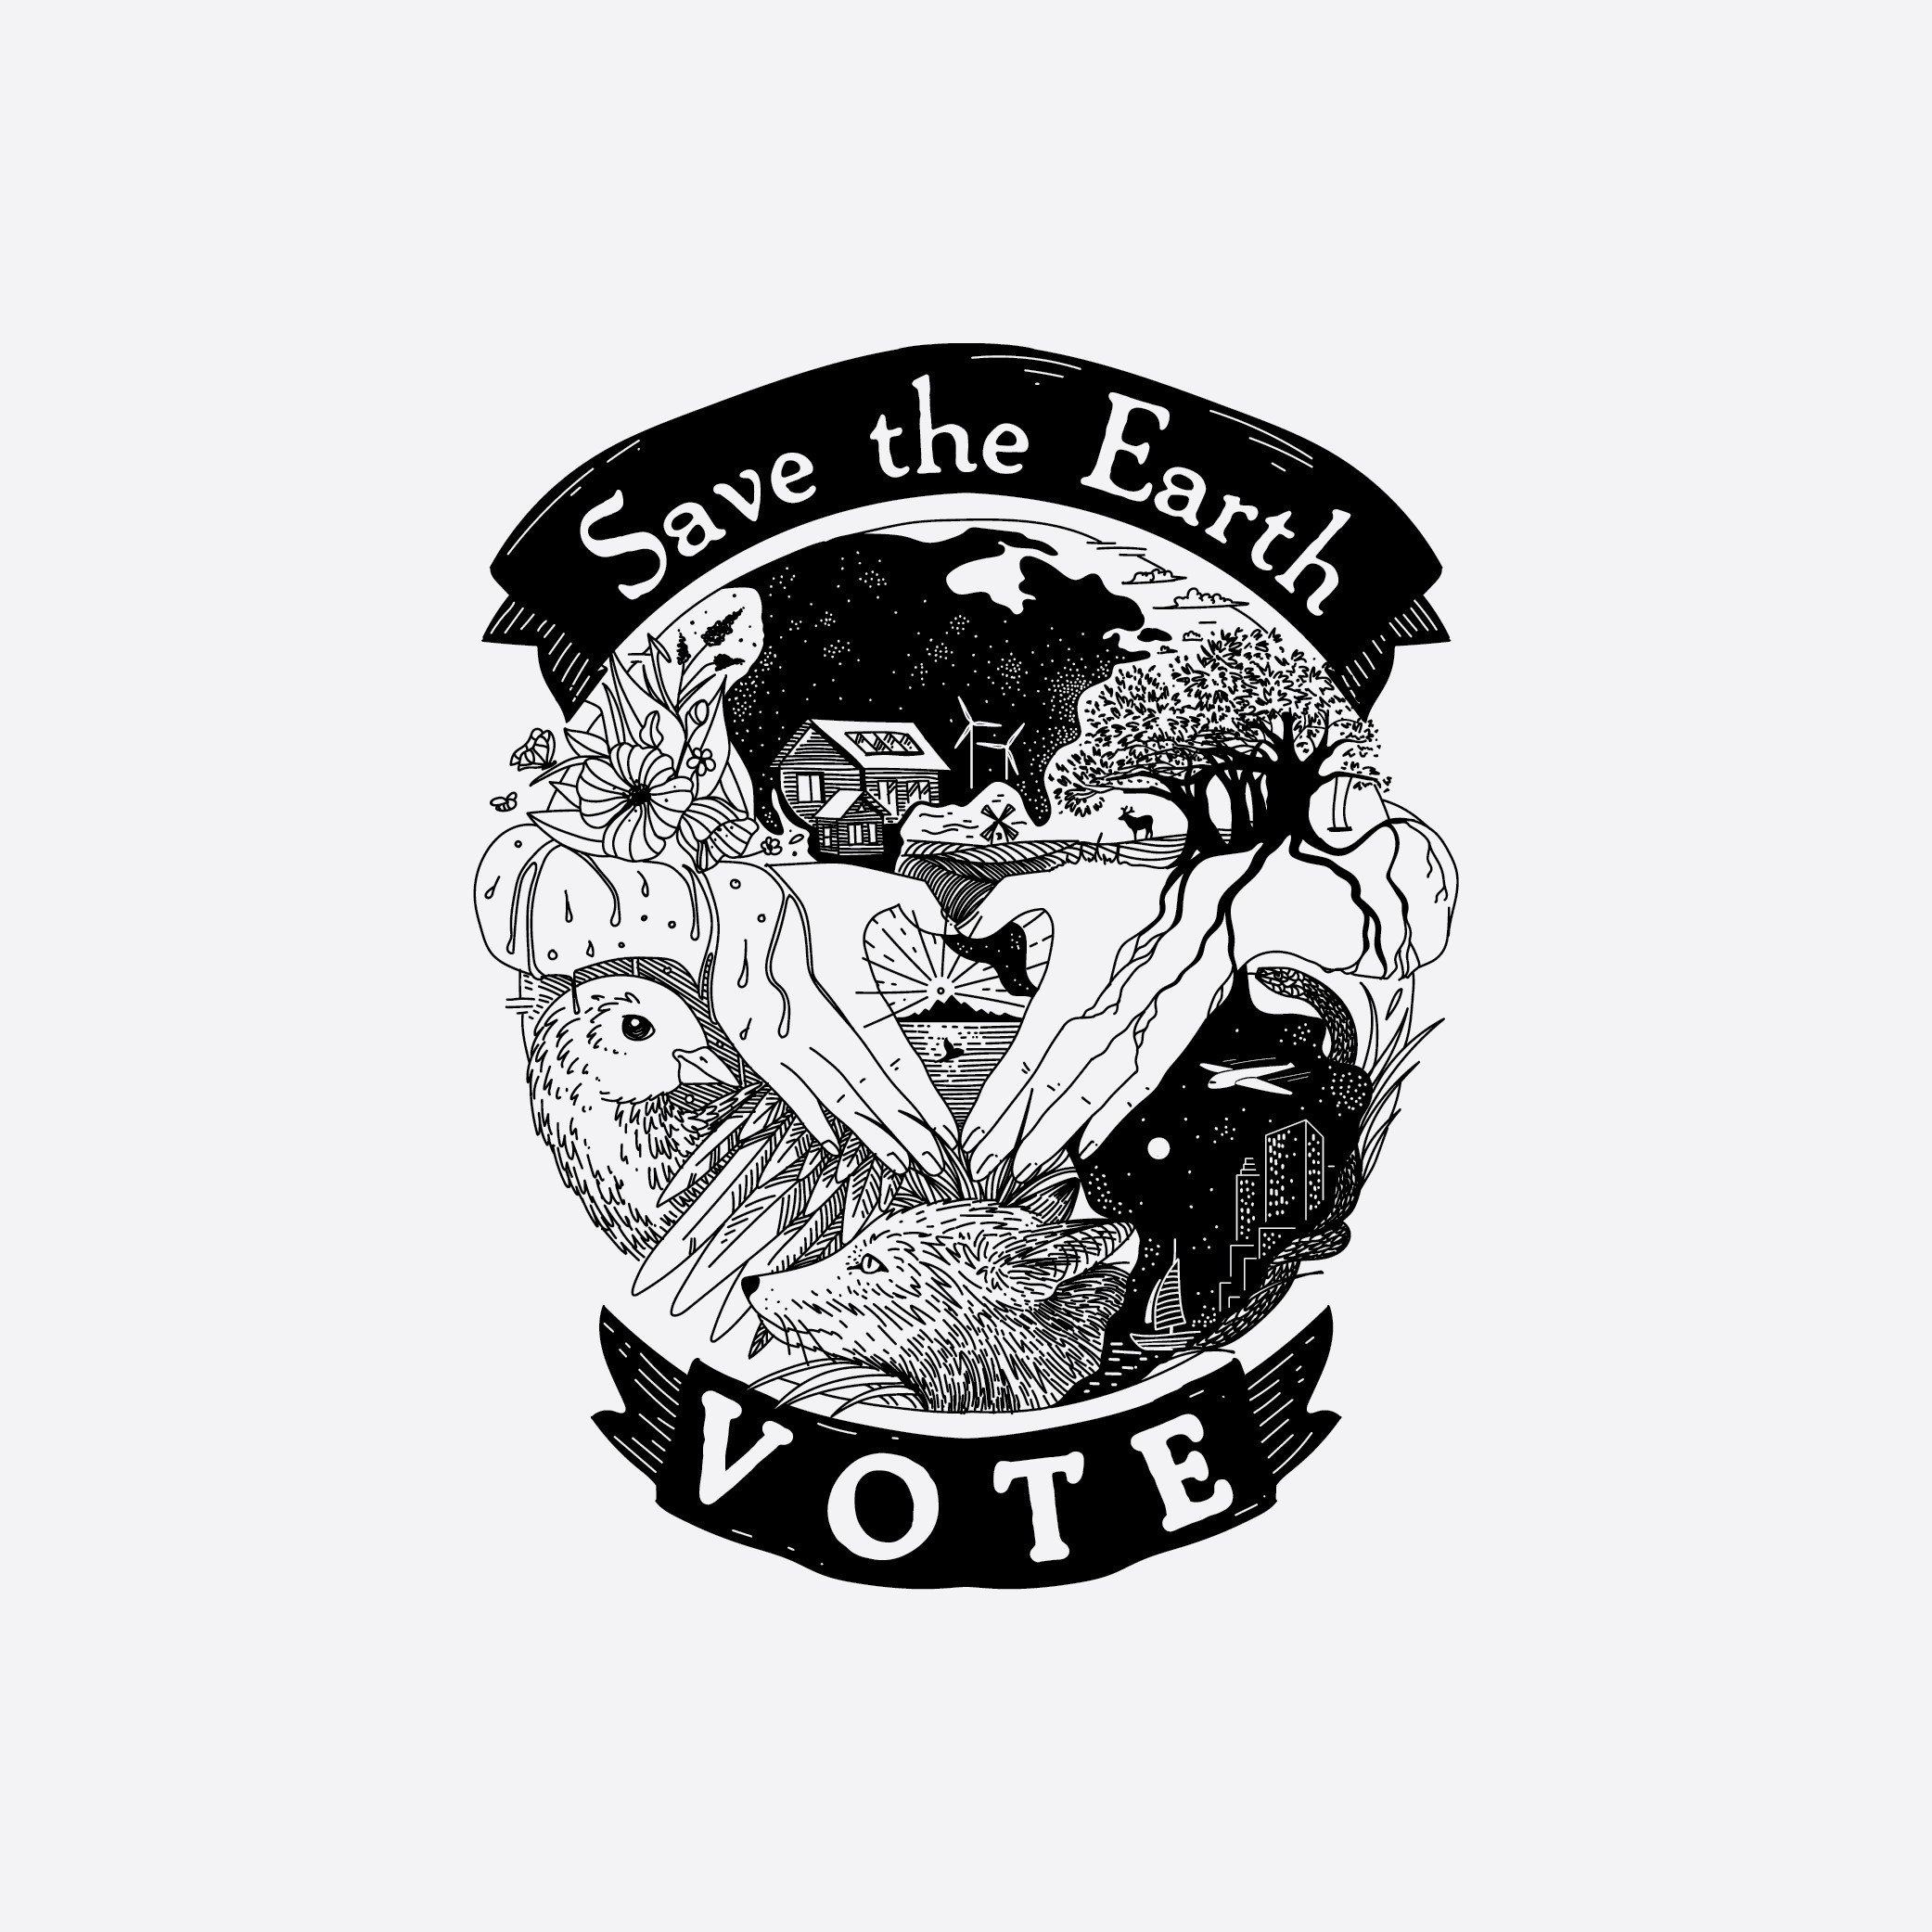 Save the Earth - VOTE